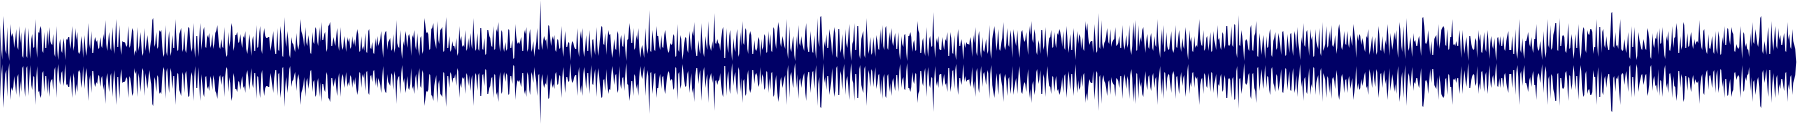 waveform of track #72352